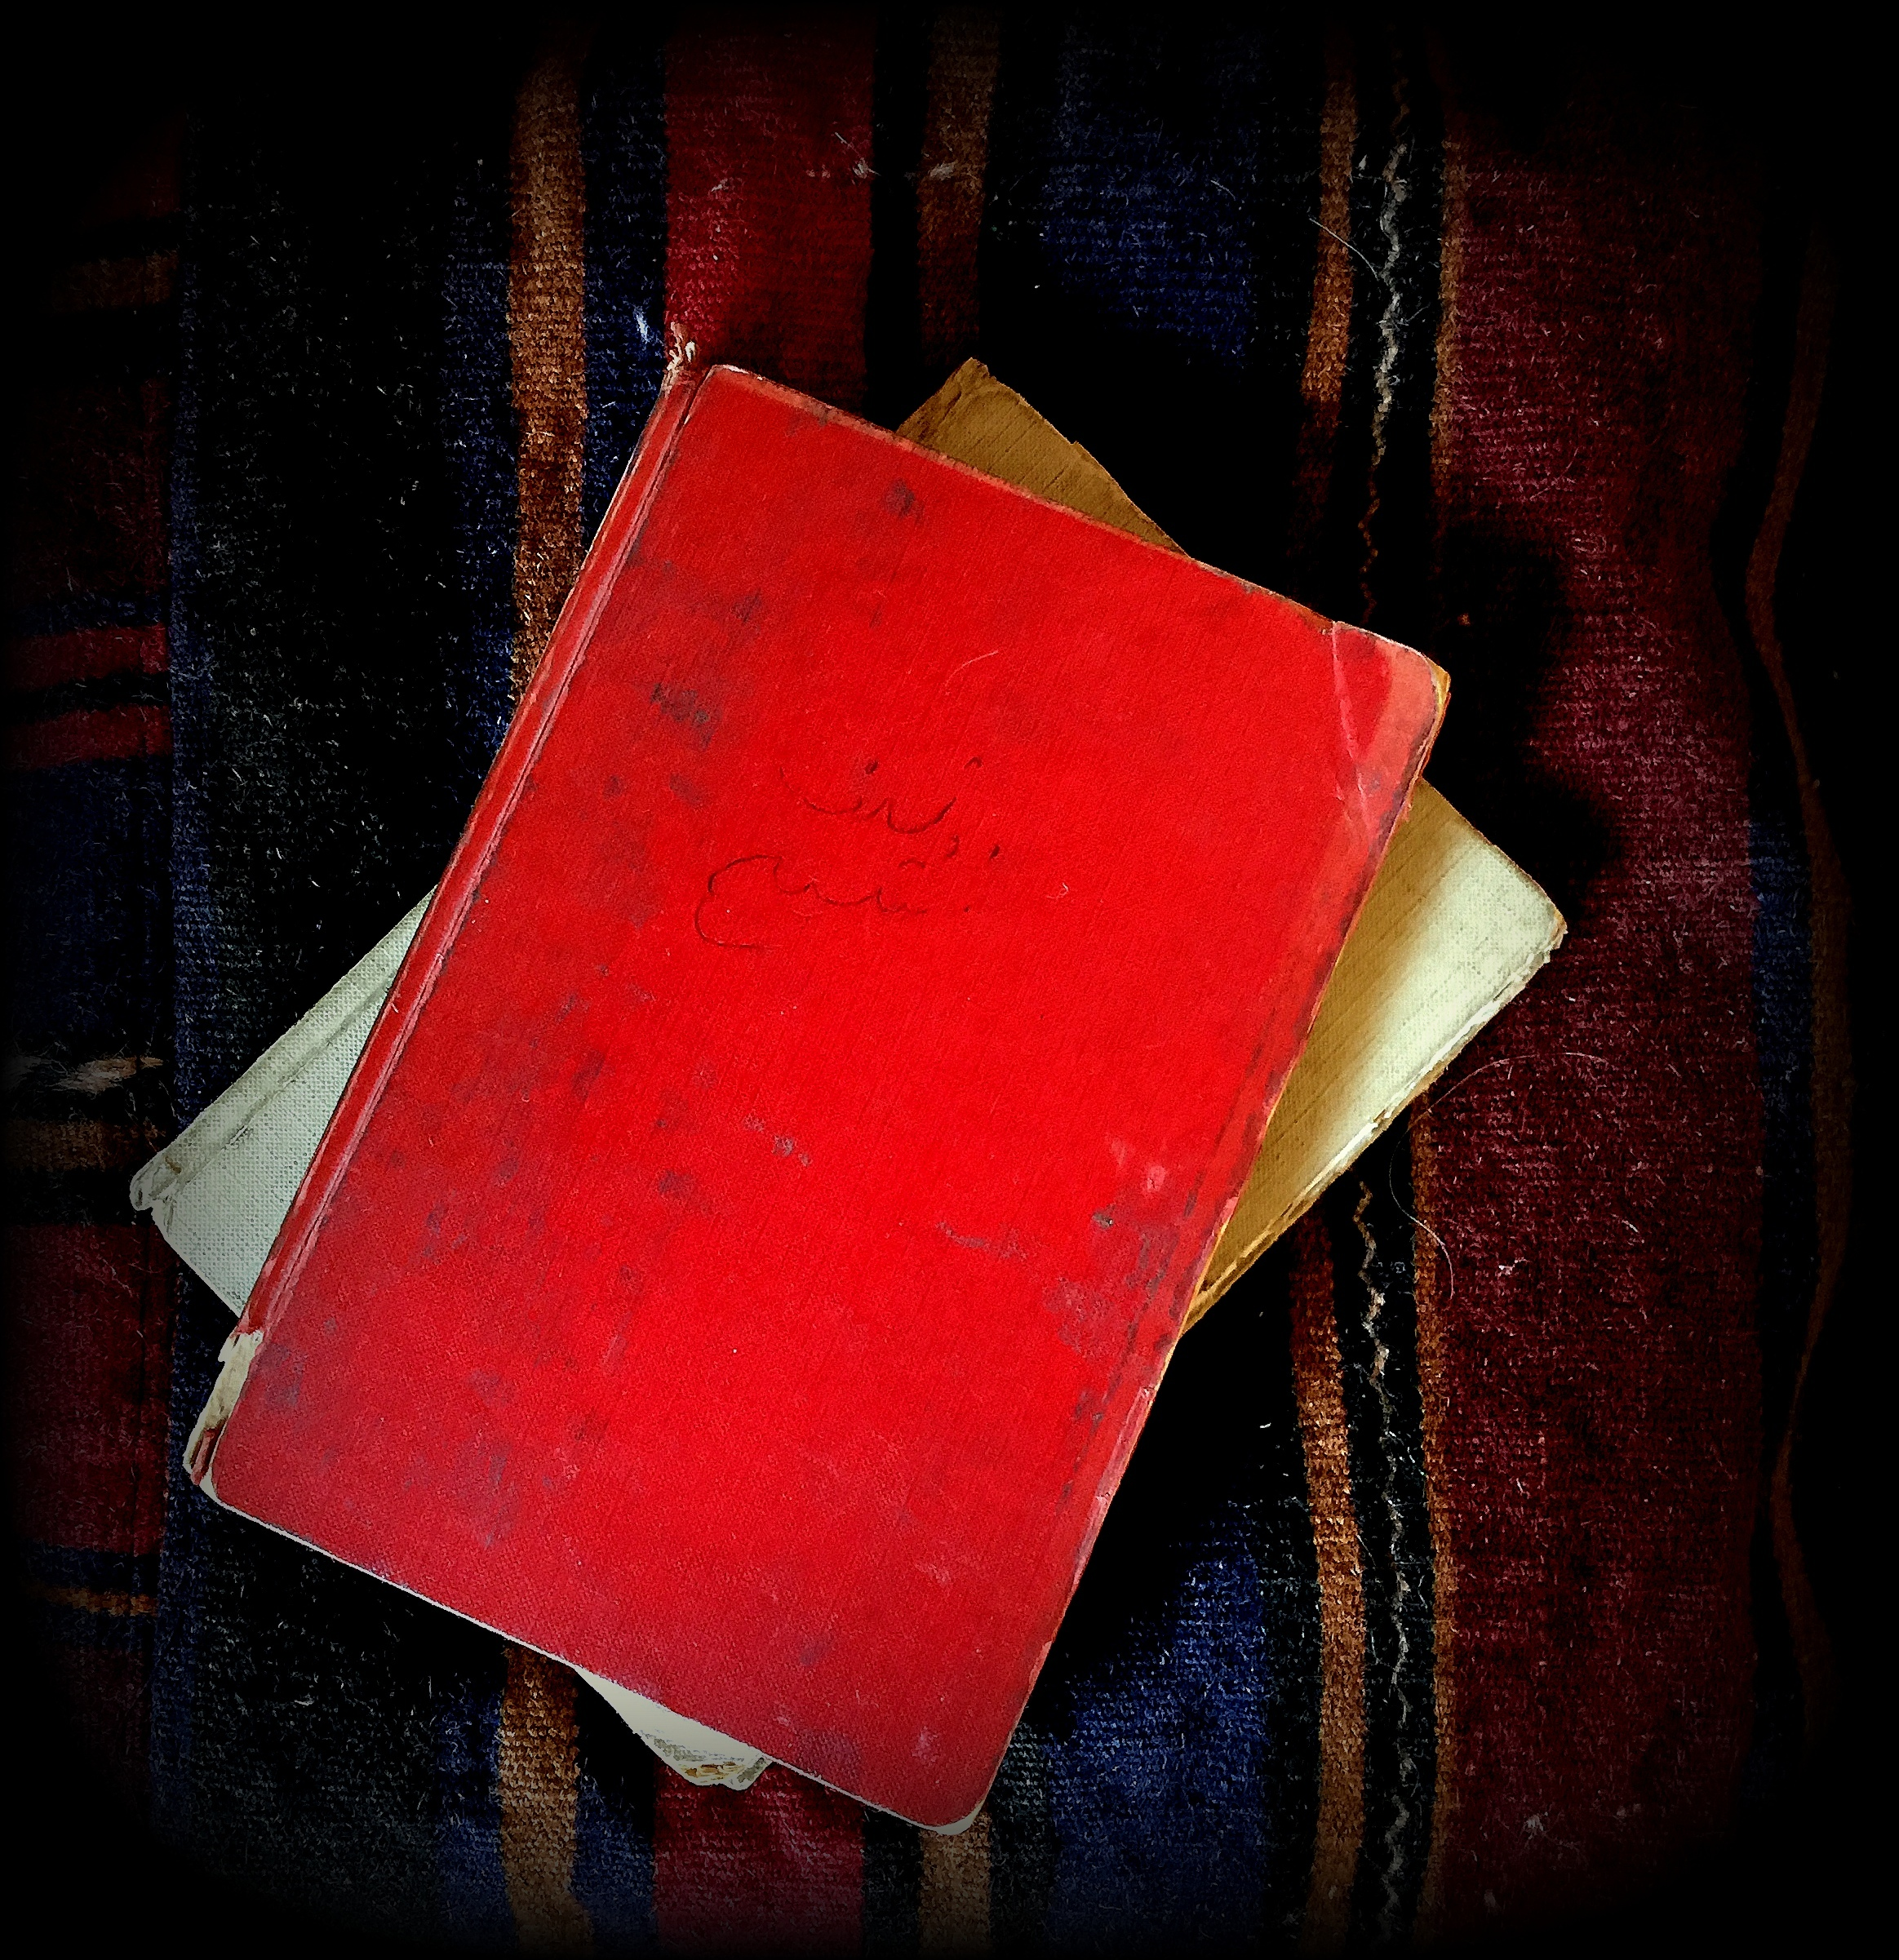 Voislav's grey and red notebooks. Photo: Author